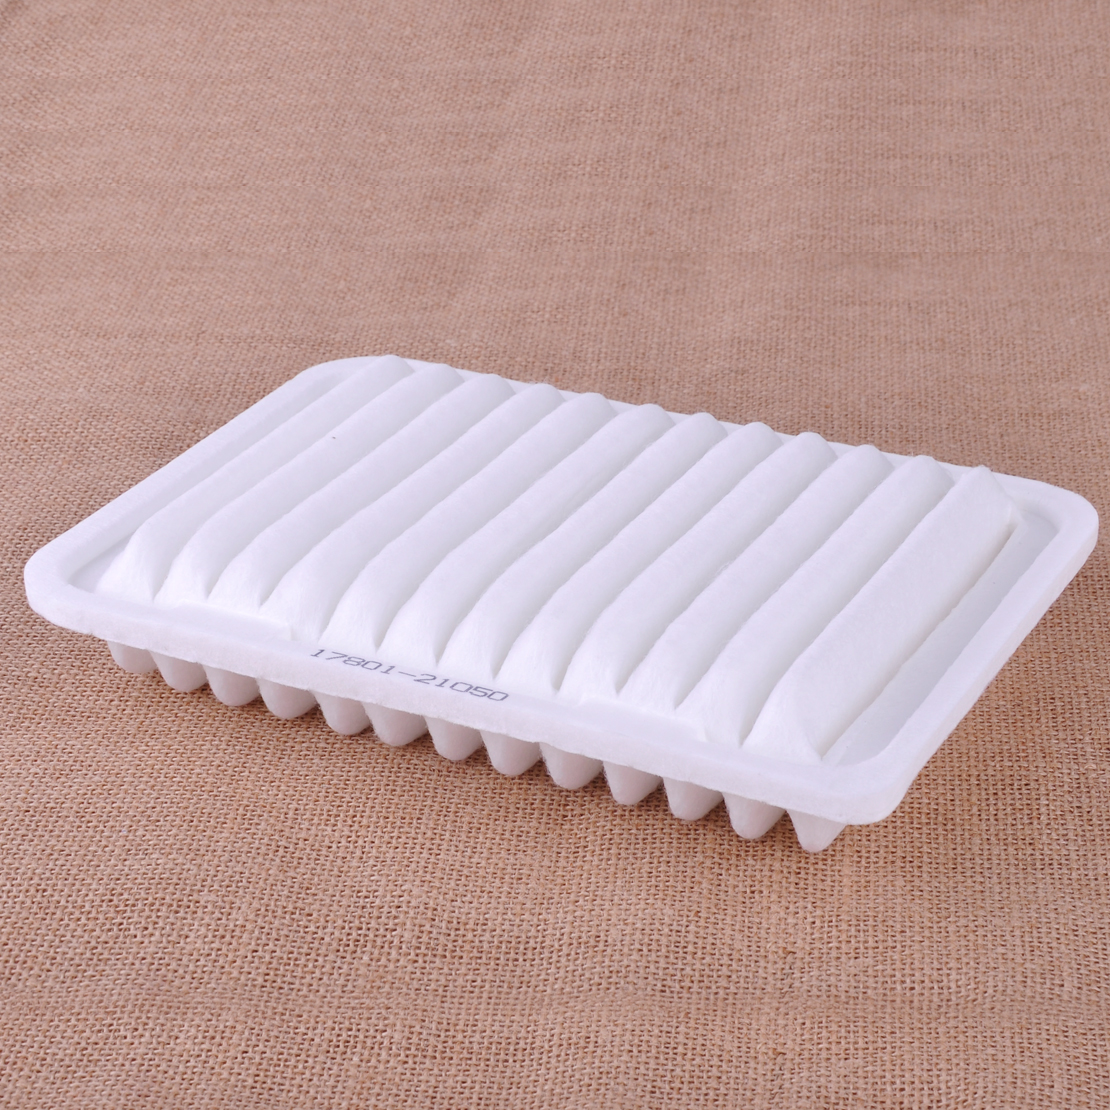 Citall 17801 21050 ca10190 white engine cabin air filter fit for toyota corolla matrix yaris